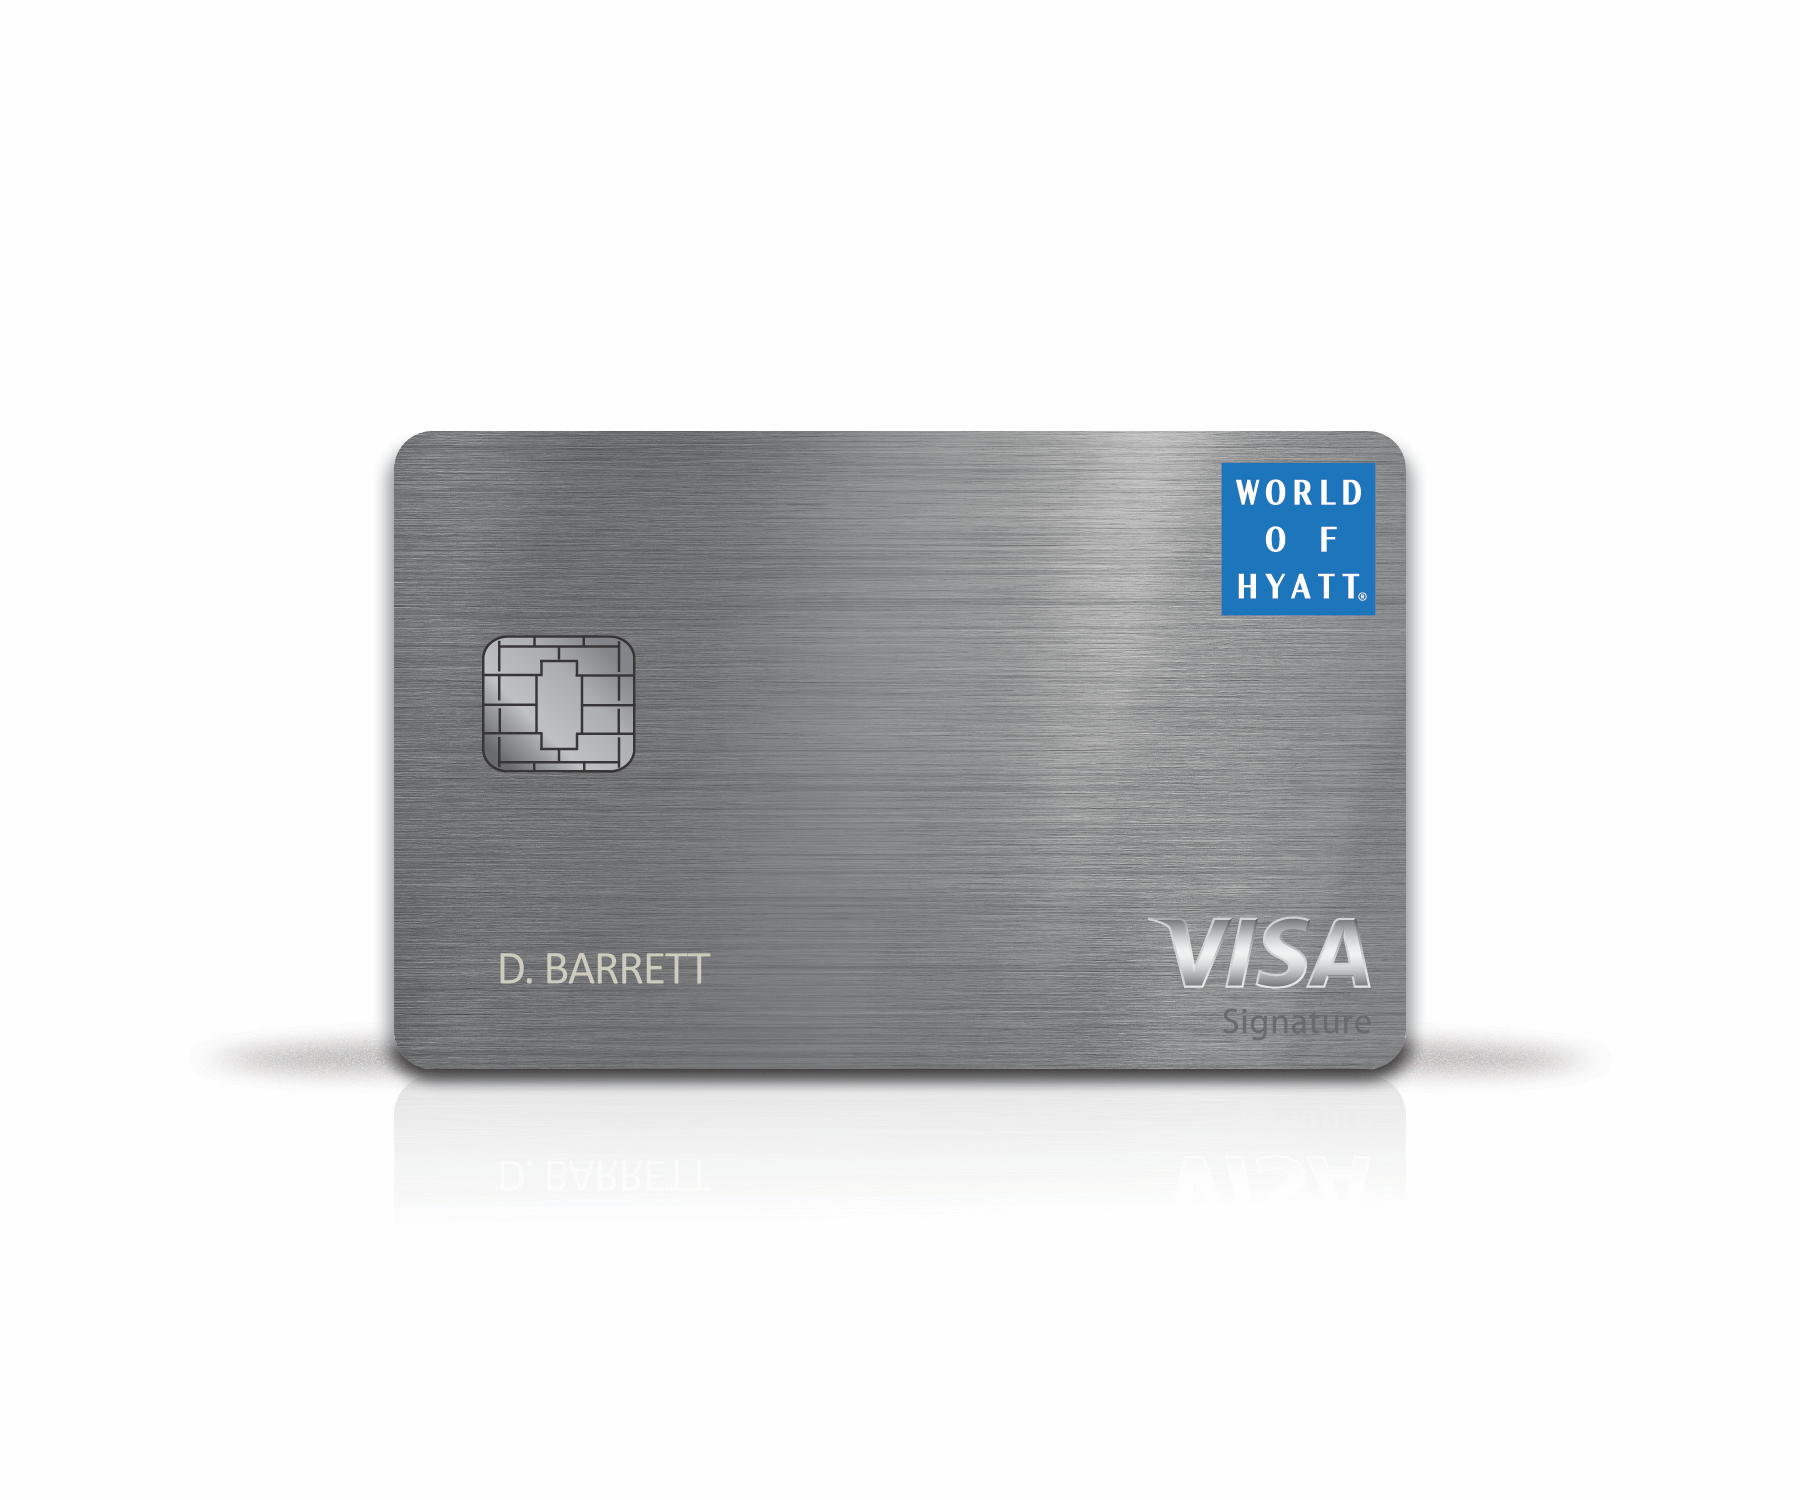 Travel PR News | Chase Card Services and Hyatt Hotels Corporation